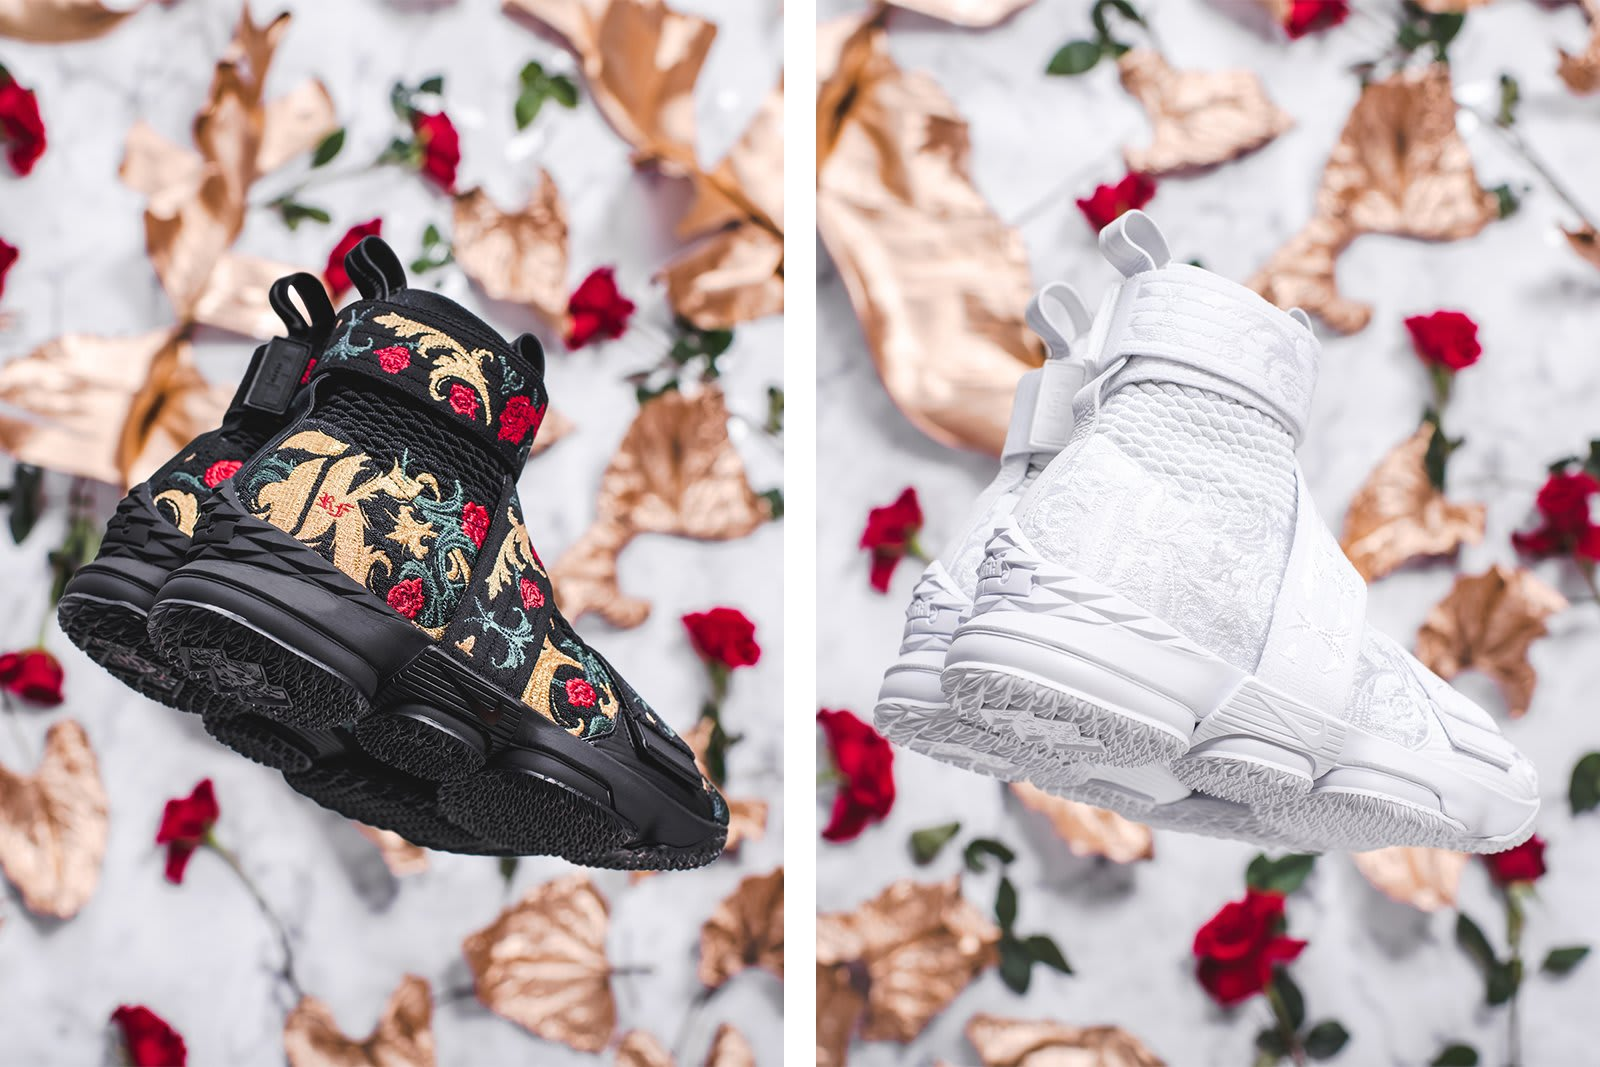 Kith x Nike LeBron 15 'Long Live the King' Chapter 2 Collection 6